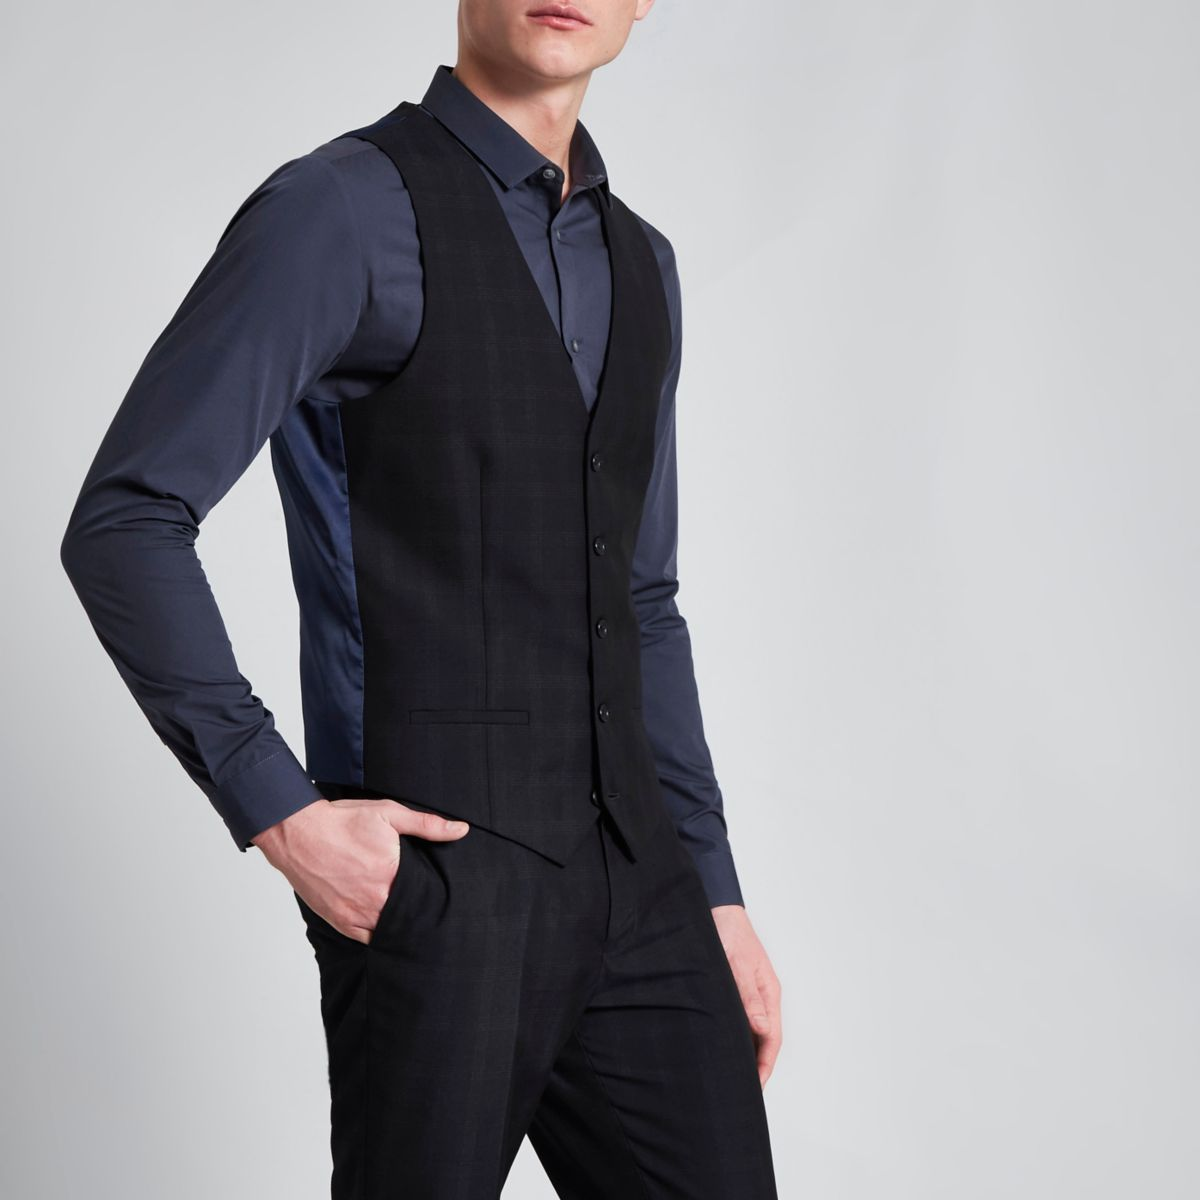 Navy check print smart suit vest